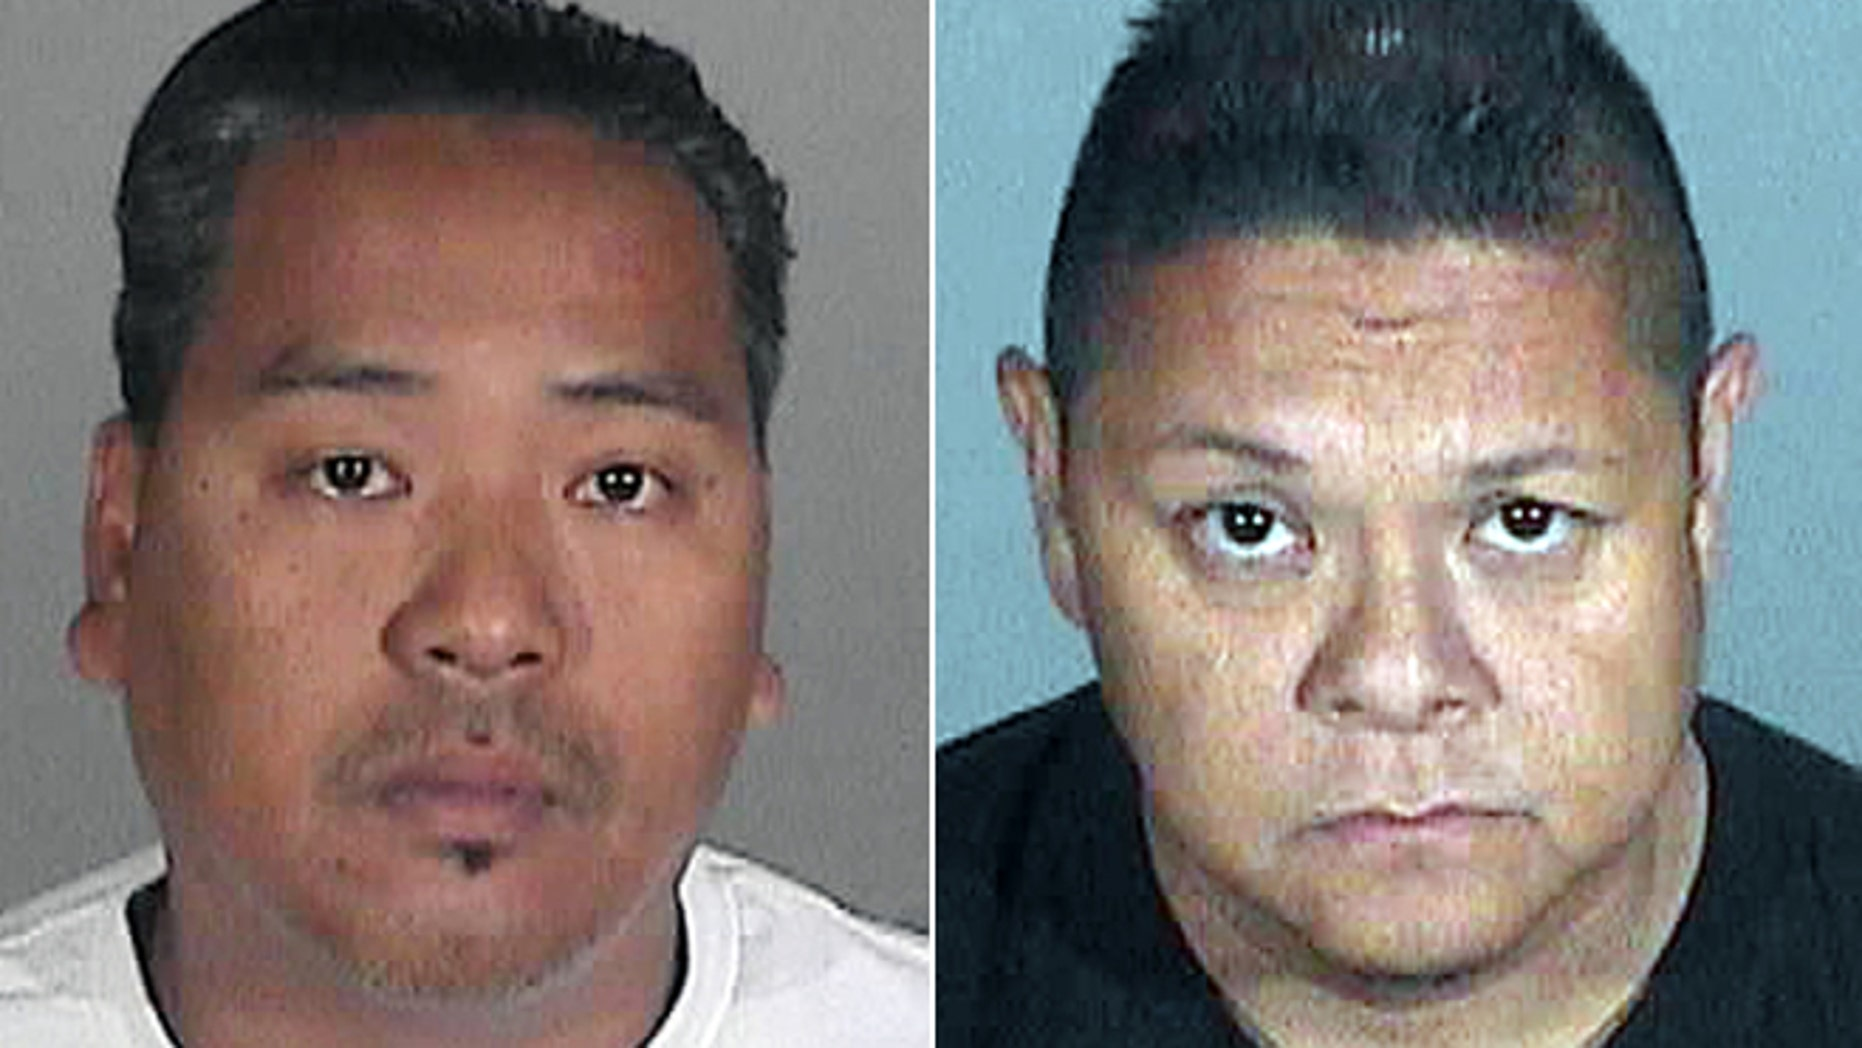 Sept. 26, 2012: This photo provided by the Santa Monica Police Department shows suspects Wilmer Cadiz, left, and Jay Nieto, right, who was arrested in Santa Monica, Calif., on suspicion of stealing paintings from the home of a Santa Monica financier.